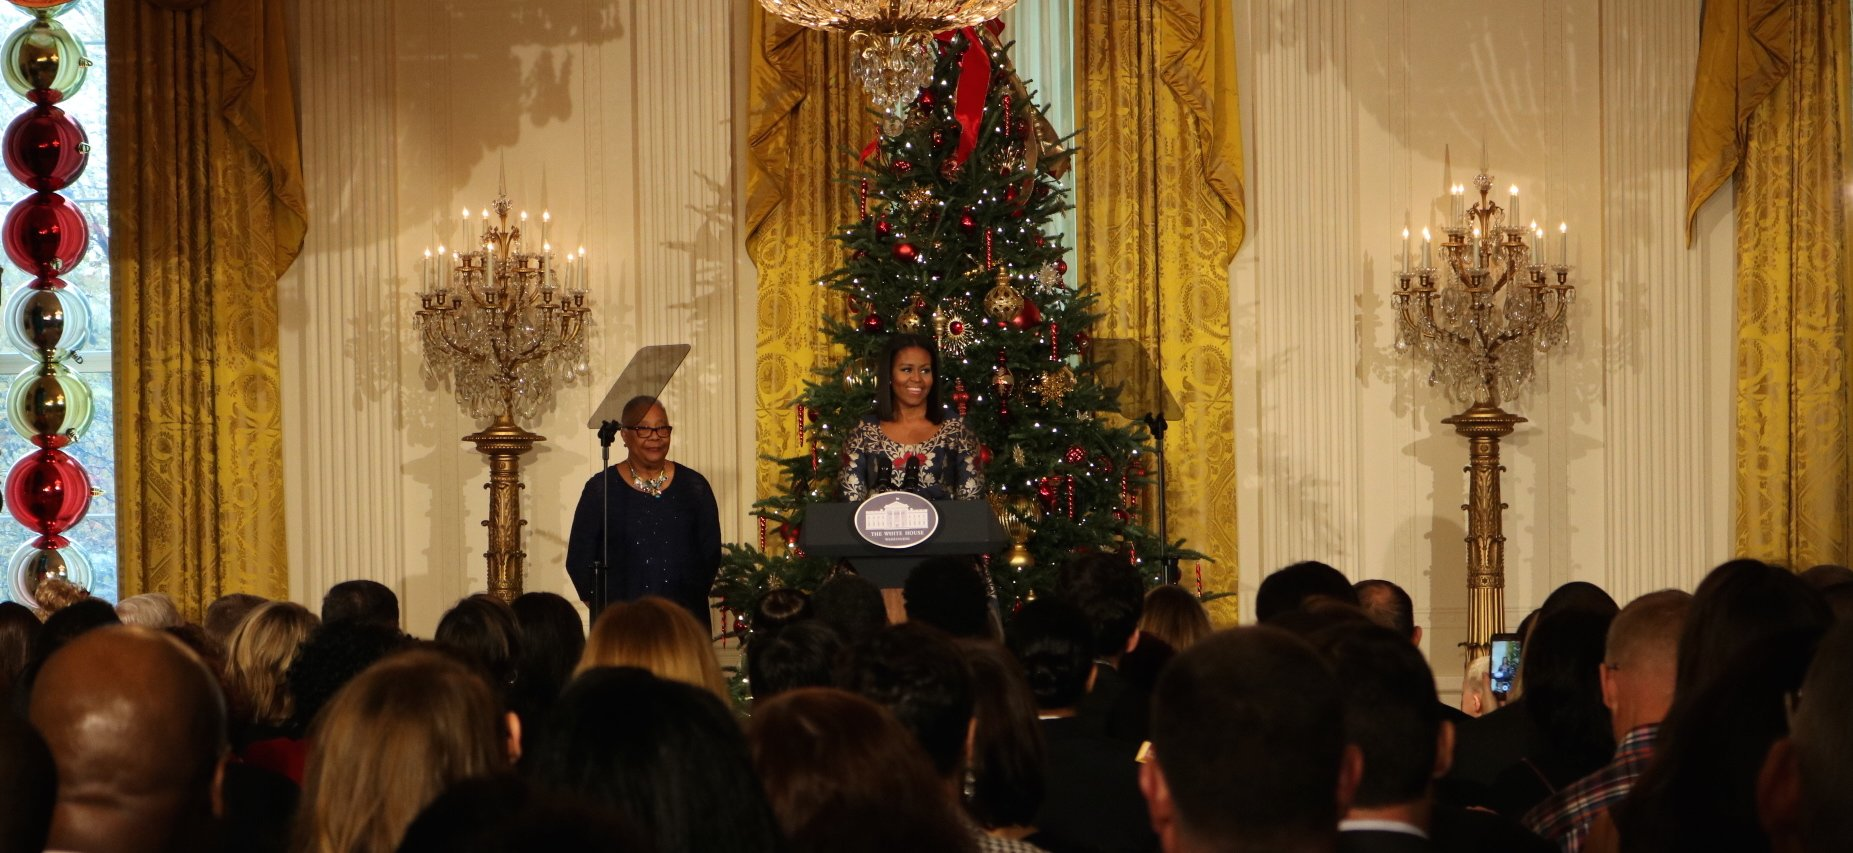 get a sneak peak of the white house's 2016 christmas decorations